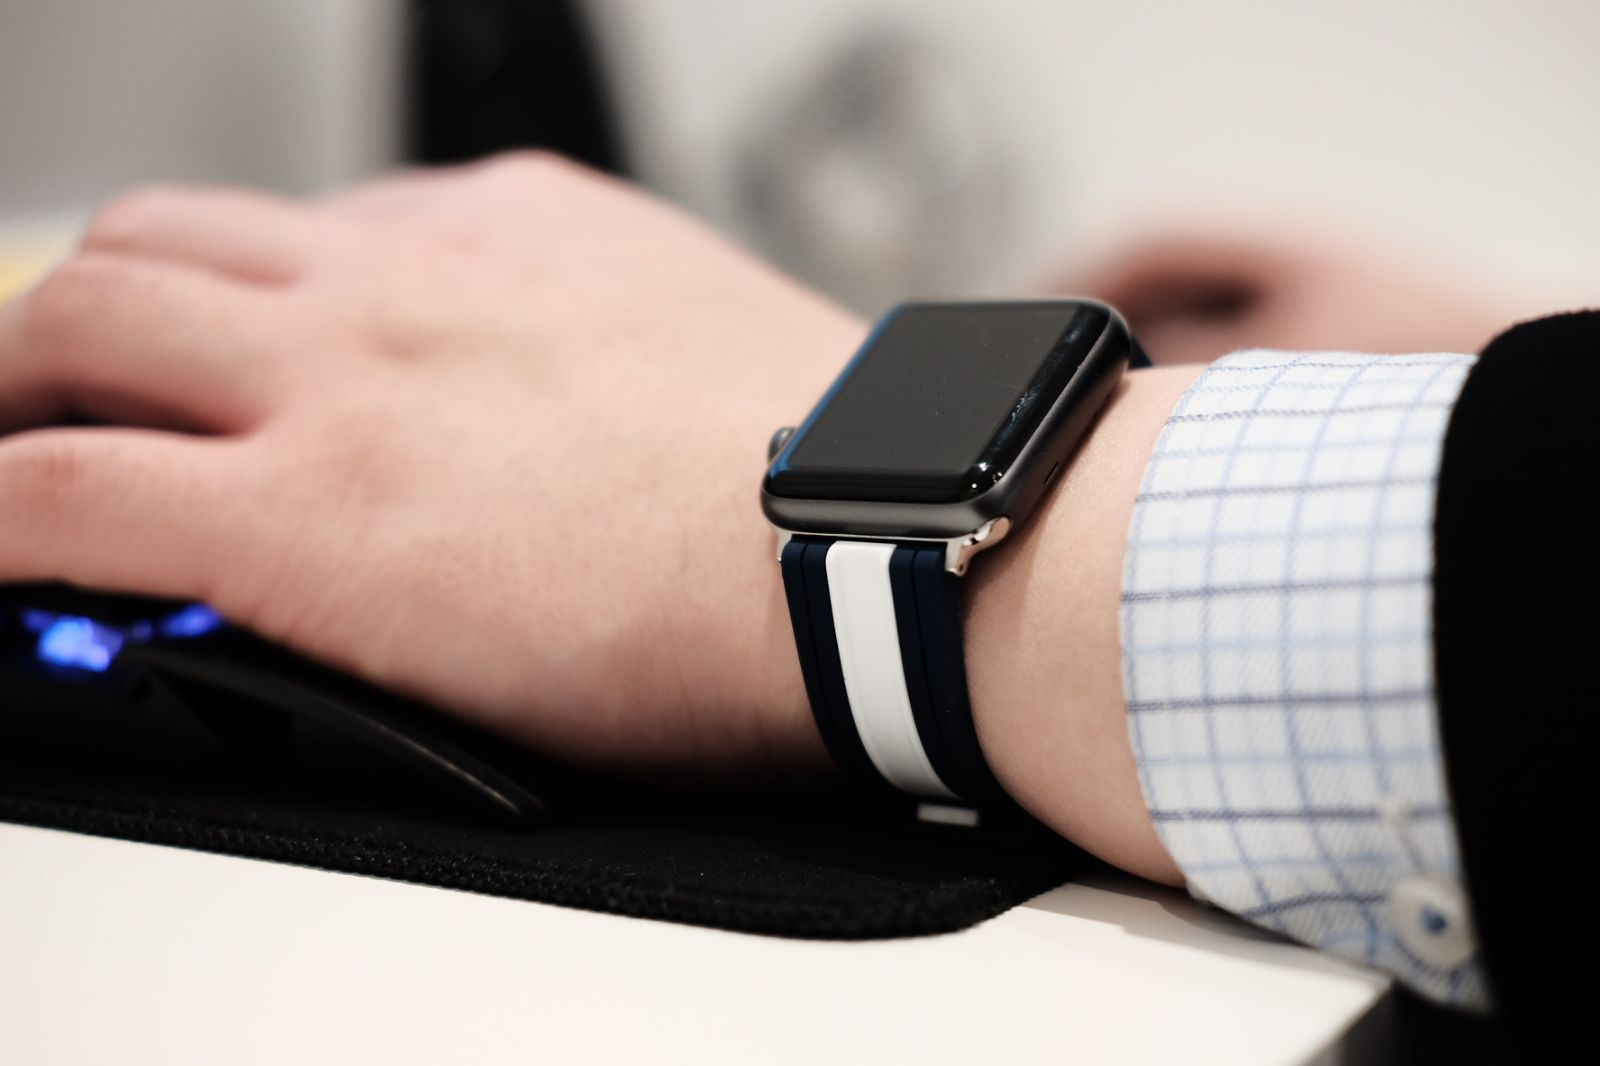 Apple Watch Bands To Stand Out From The Crowd